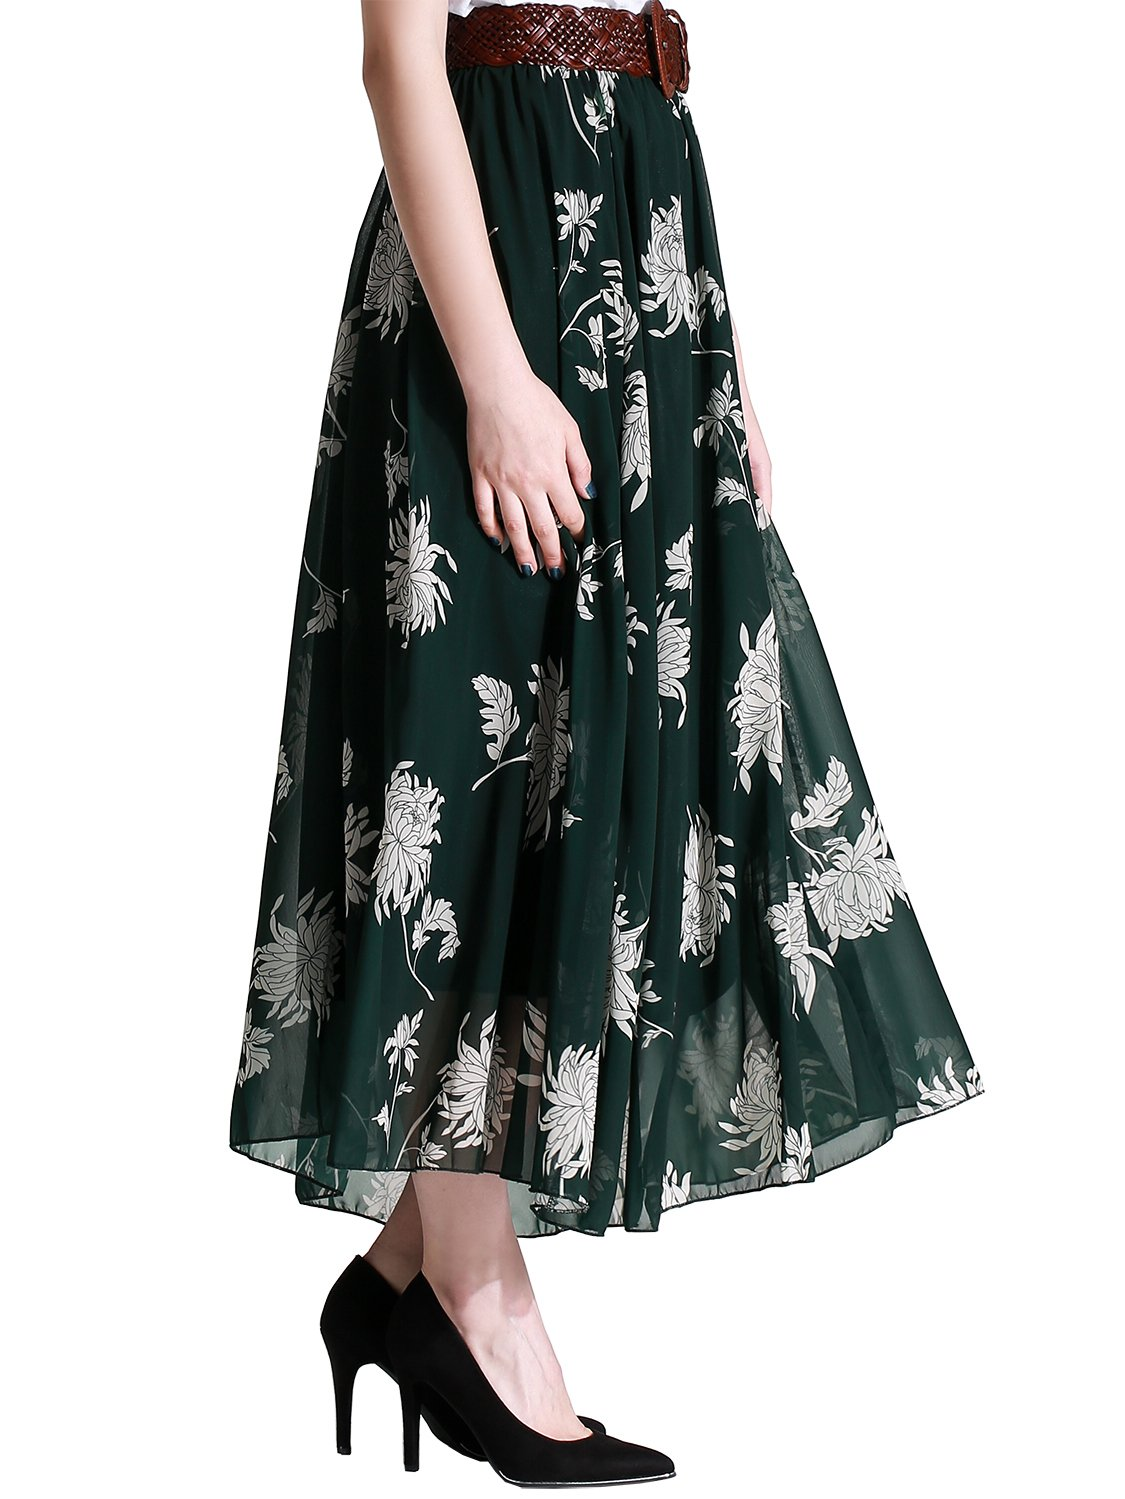 Florboom Summer Flowy Floral Chiffon Long Skirts for Women (Dark Green,X-Large)